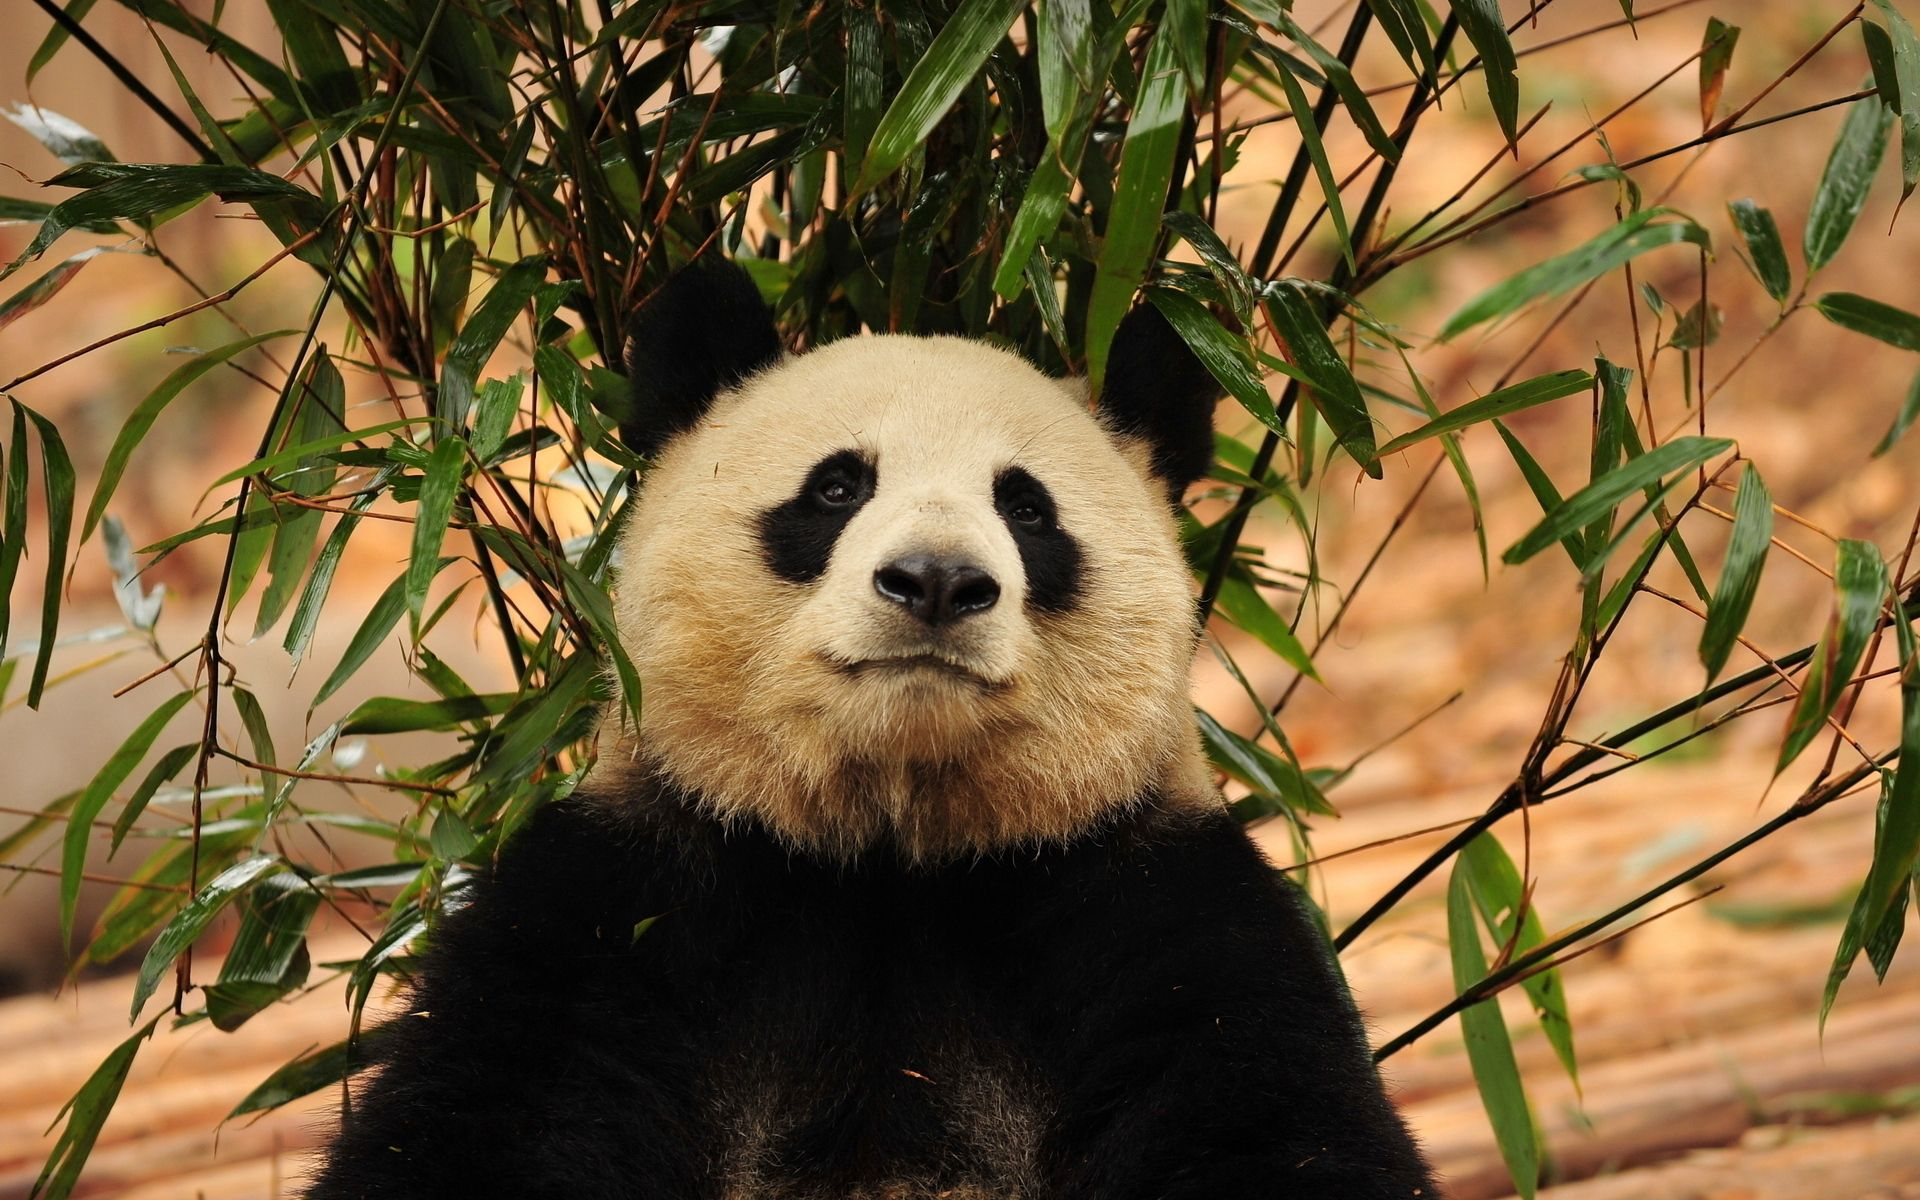 96337 download wallpaper Animals, Panda, Leaves, Branch, Grass screensavers and pictures for free